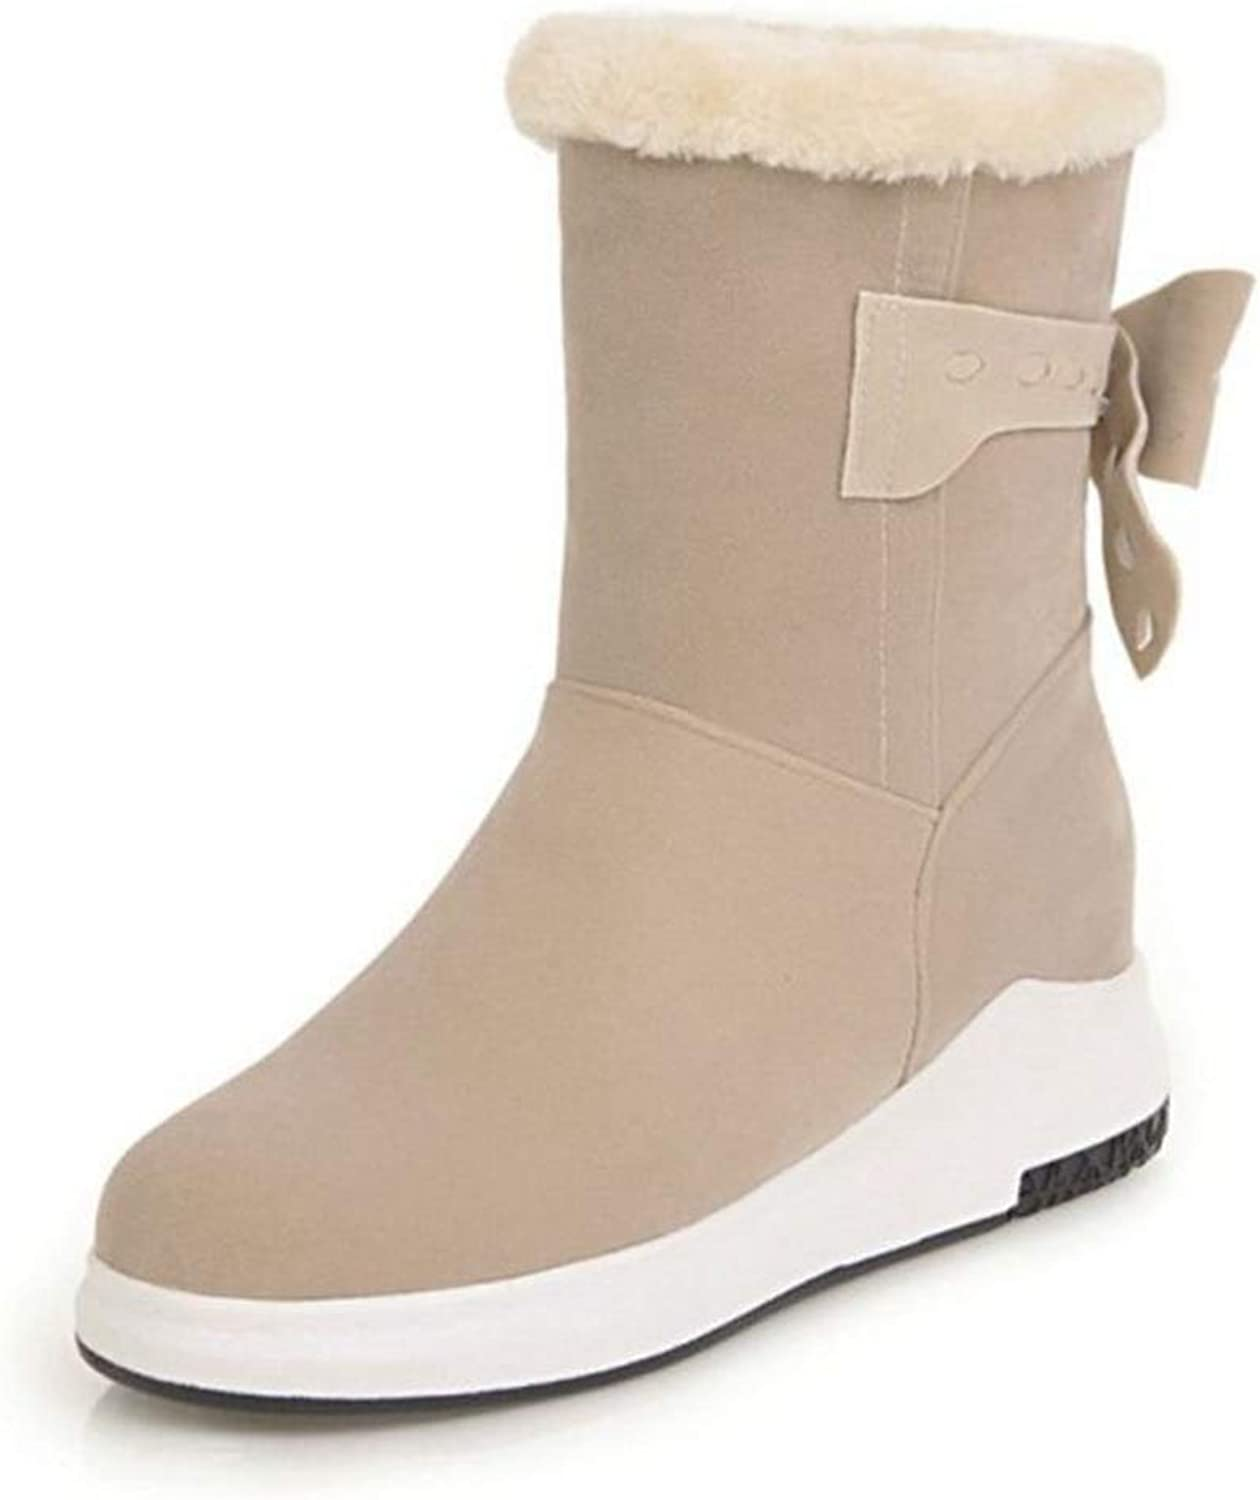 T-JULY Women's Flats Boots Bowtie Round Toe Plush Fur Ankle High Boots Fashion Warm Winter shoes Footwear